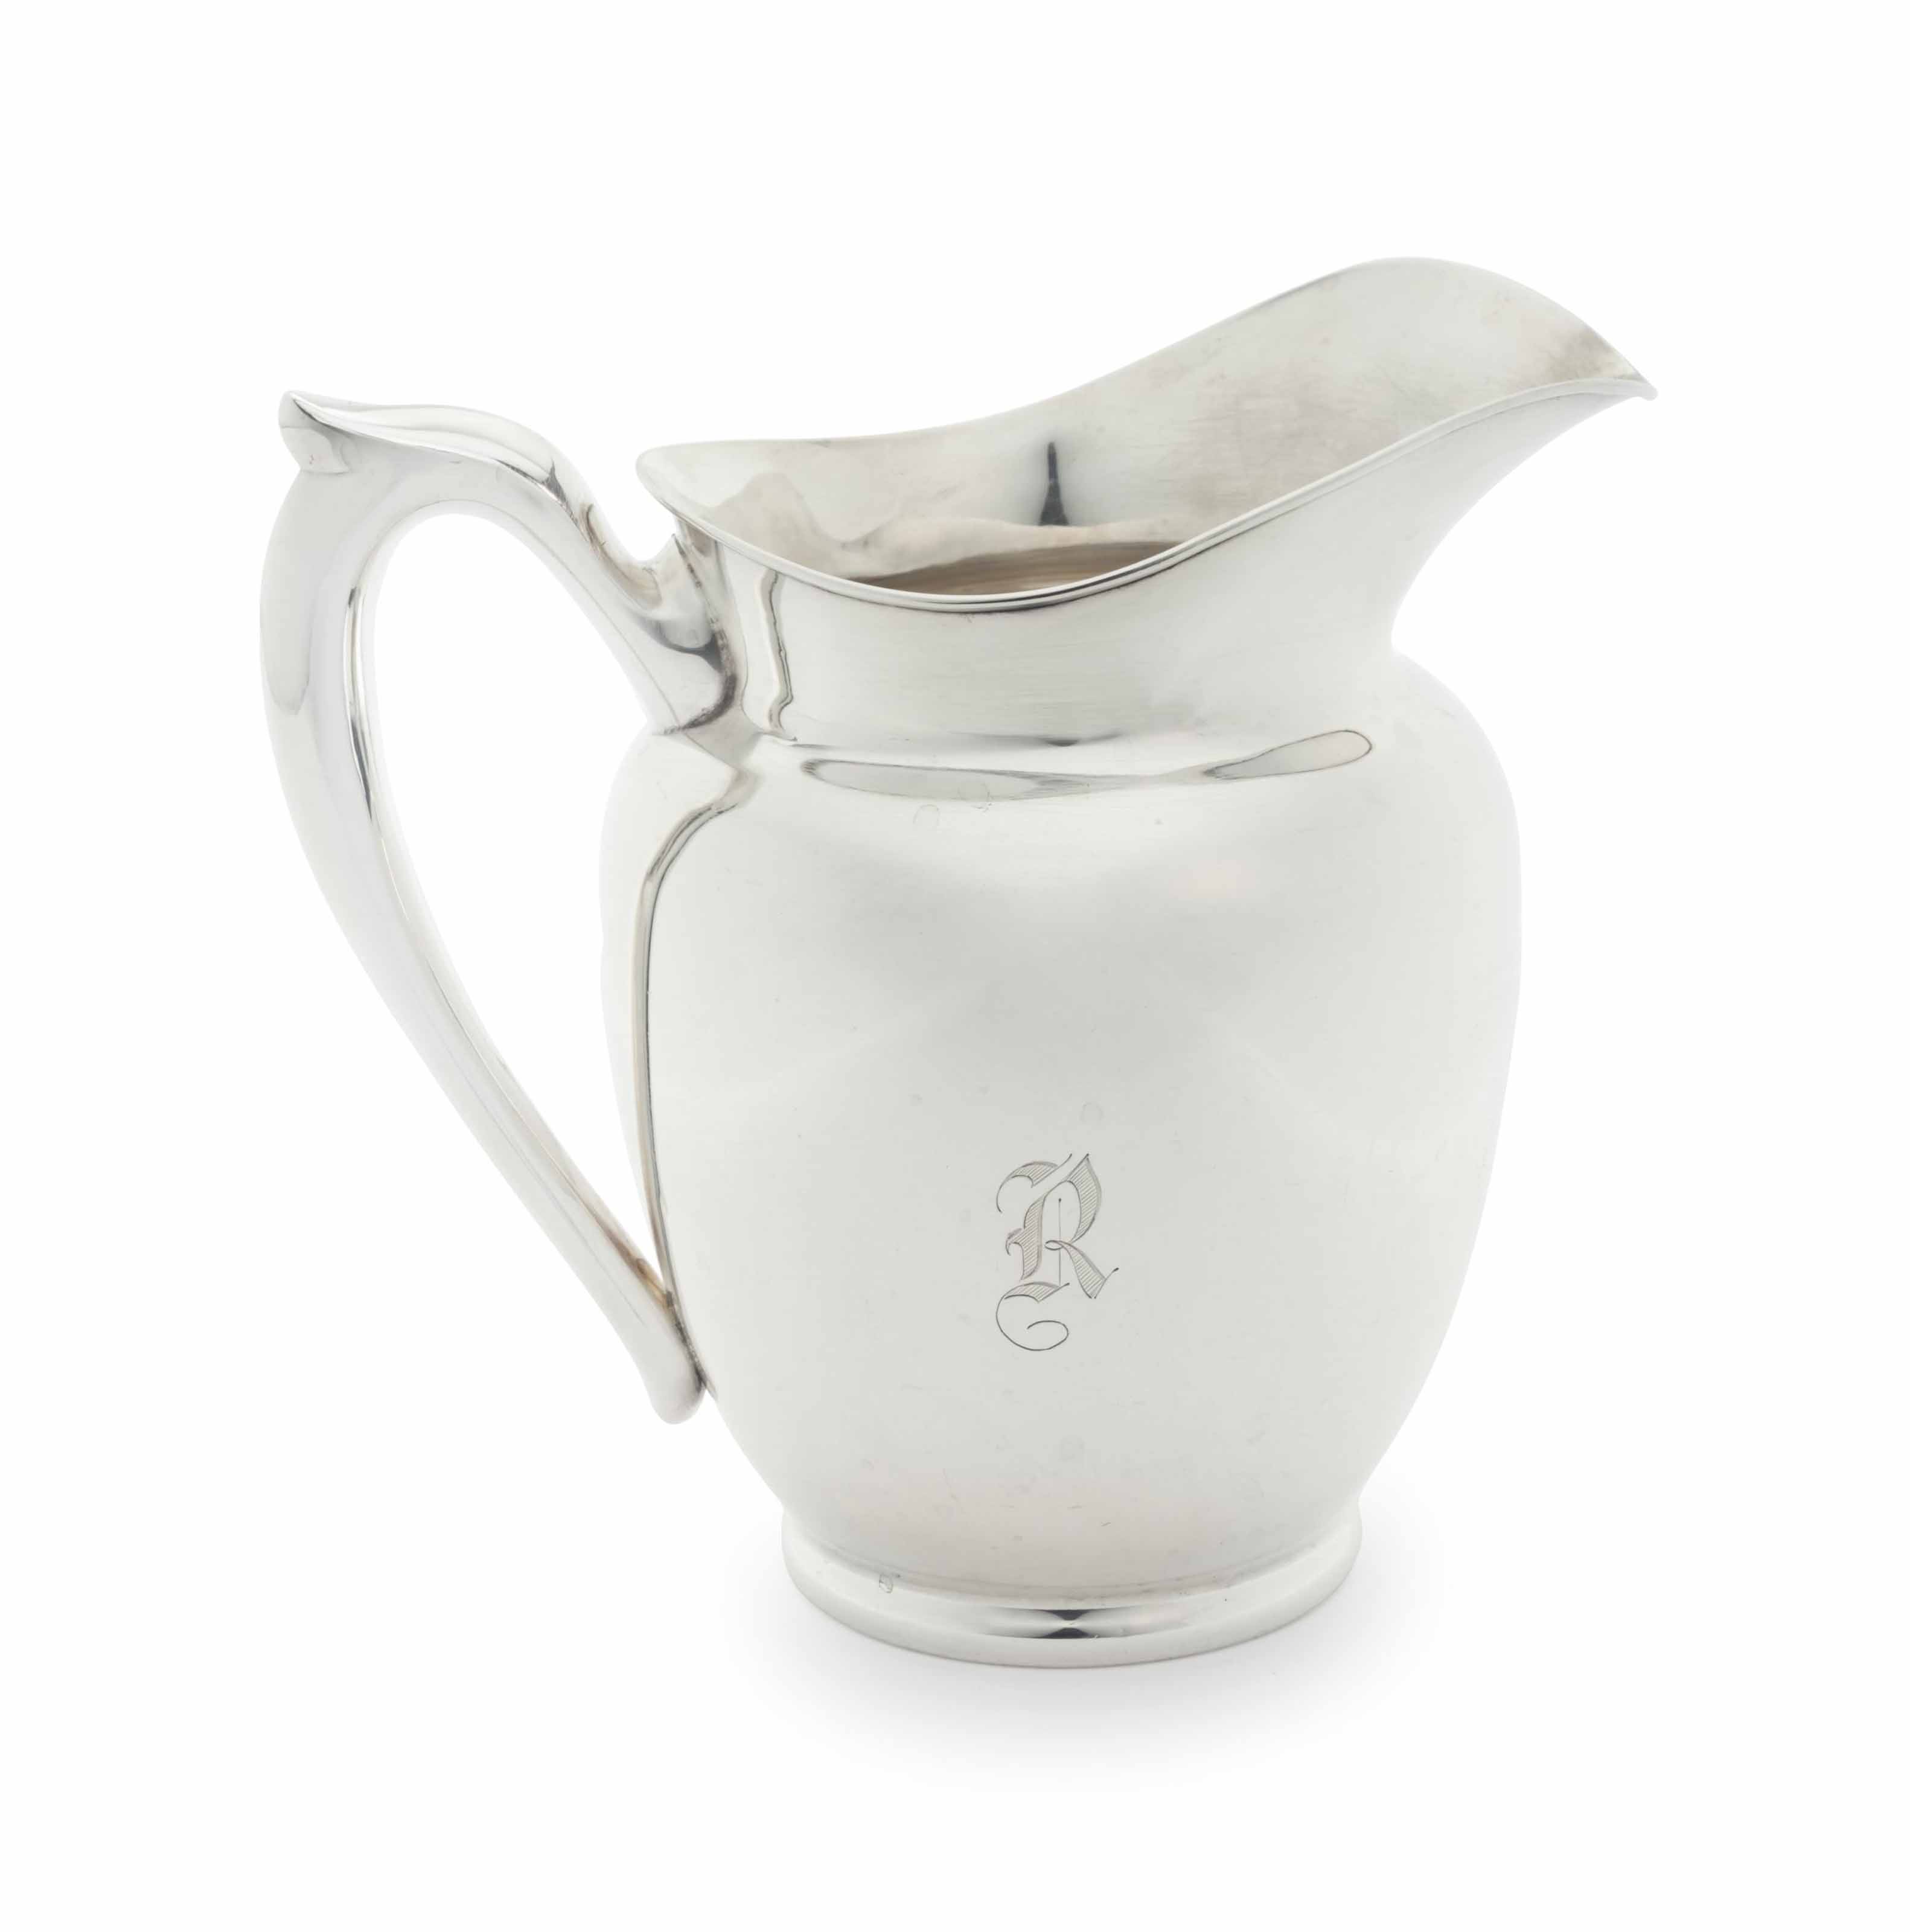 PRESIDENT AND MRS. RONALD REAGAN  AN AMERICAN SILVER WATER PITCHER